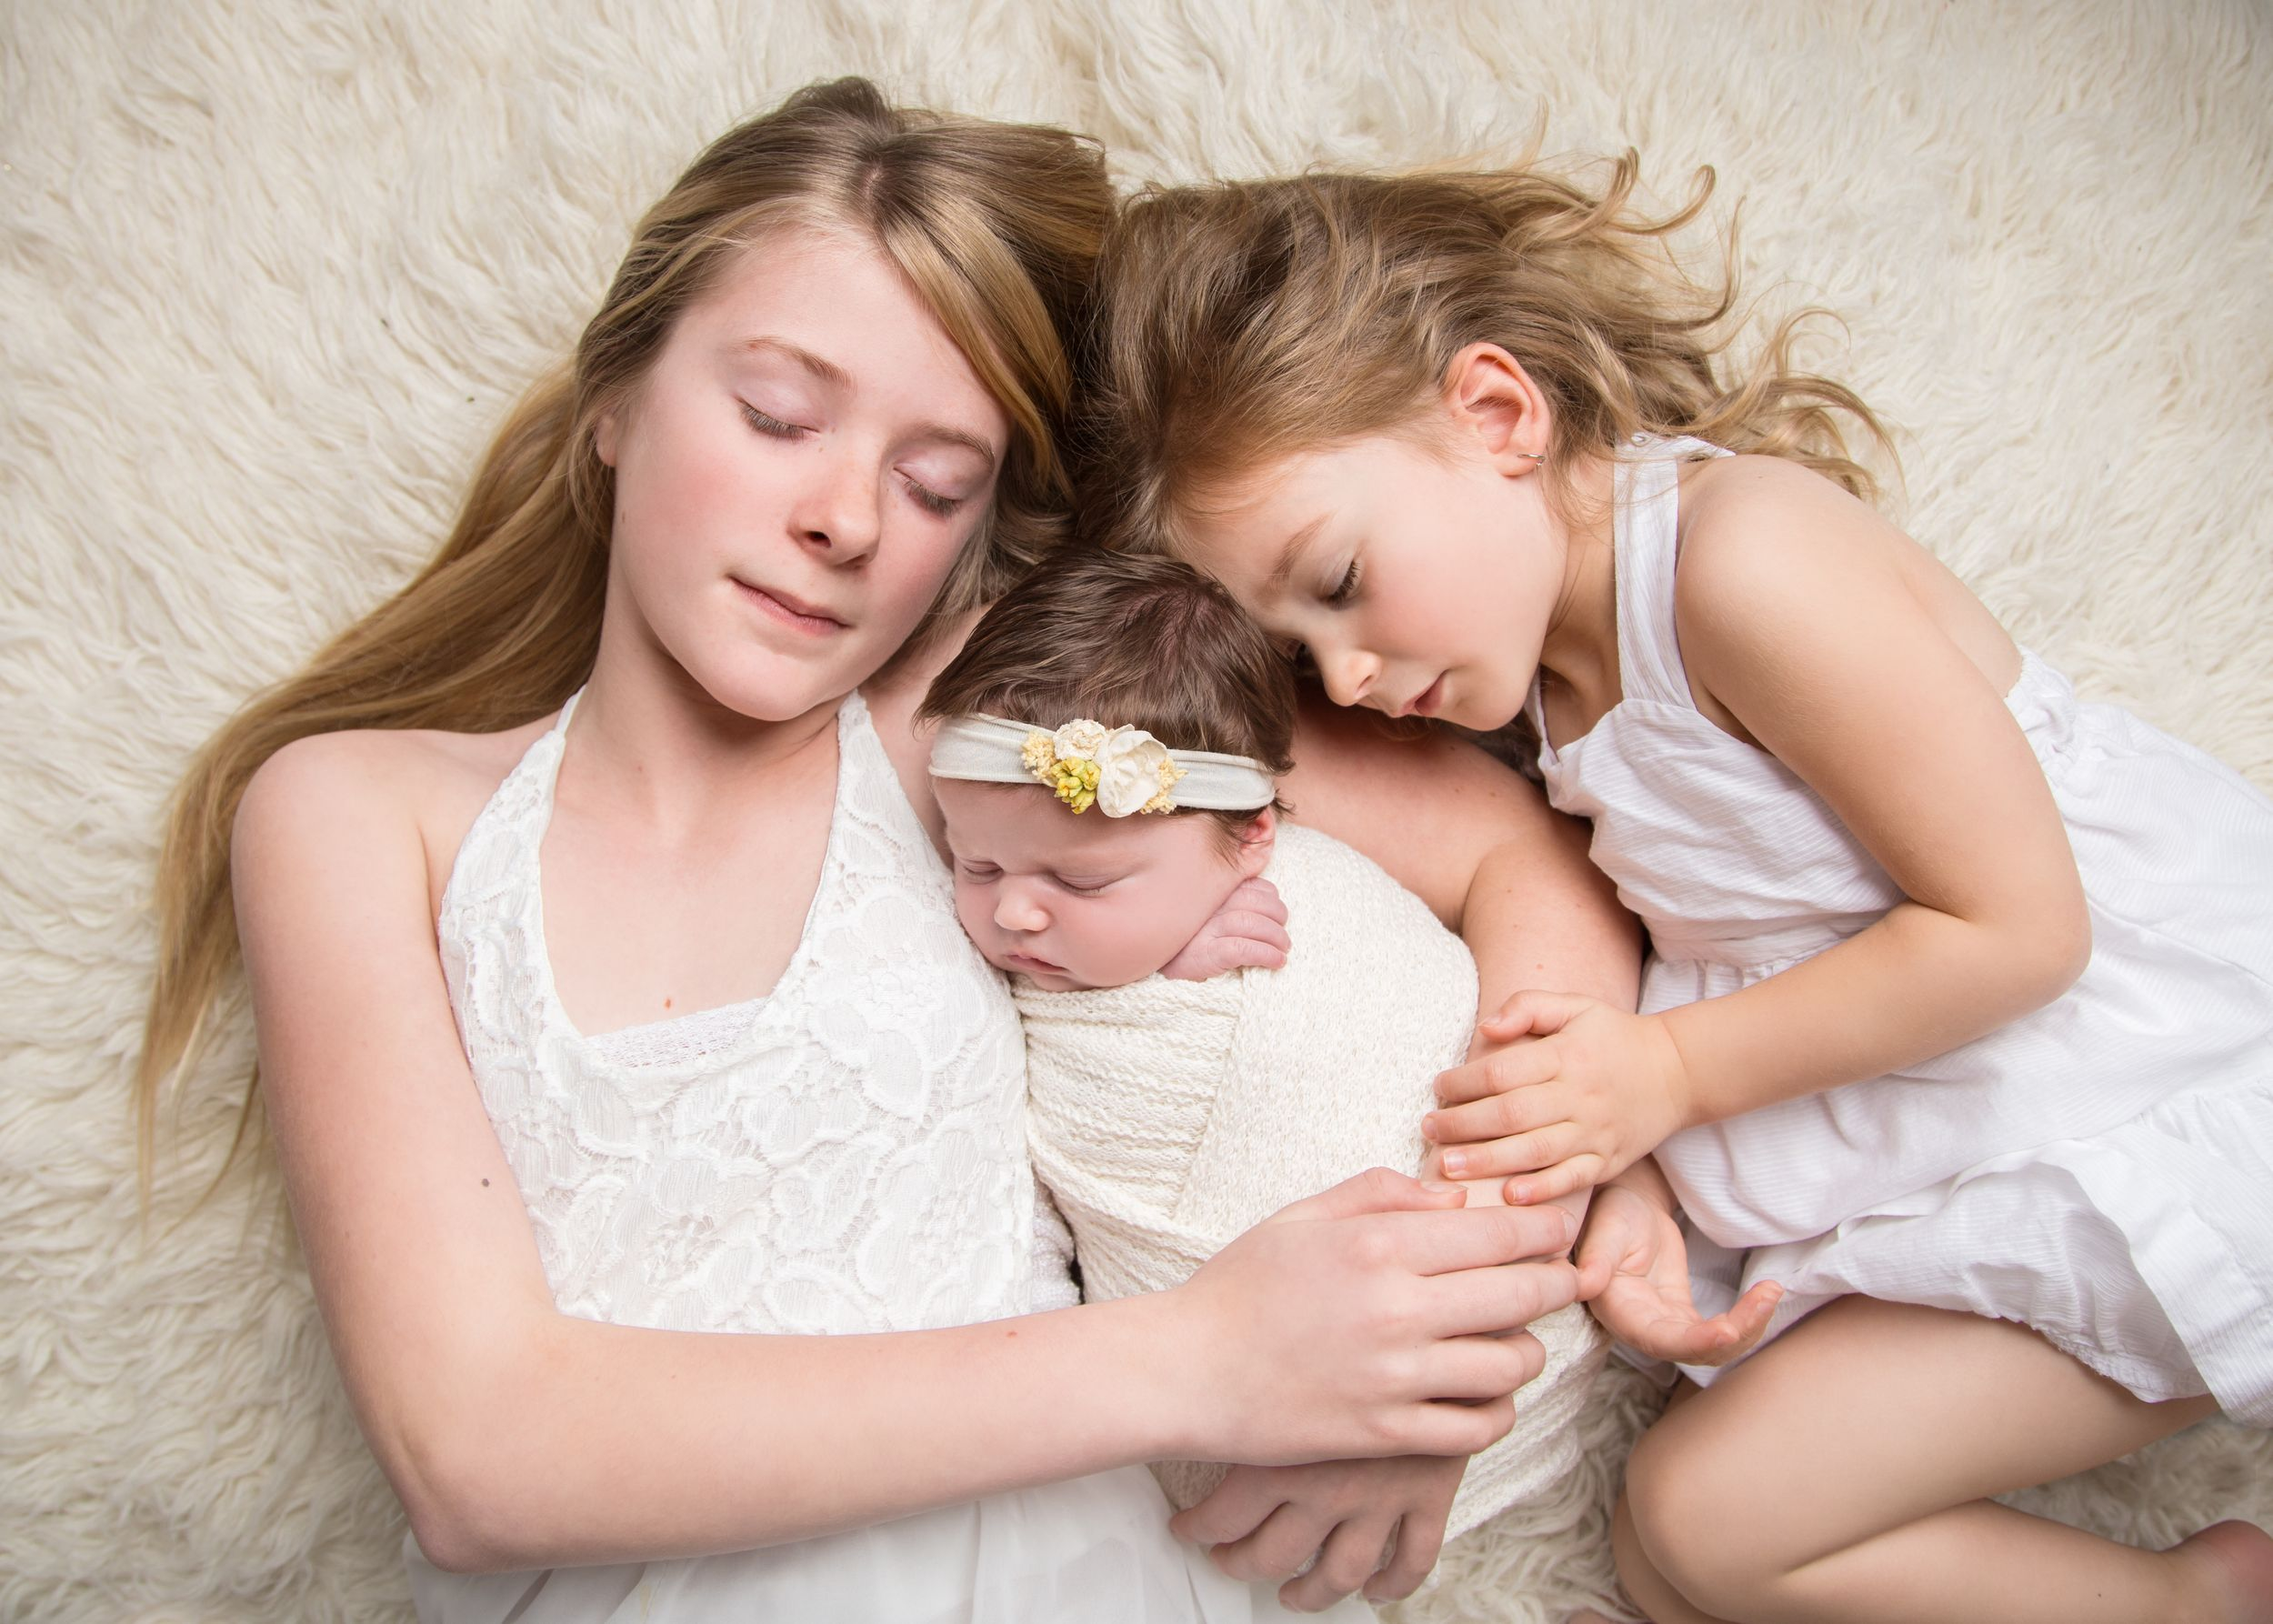 Newborn baby girl laying with siblings - Newborn photography in Penticton